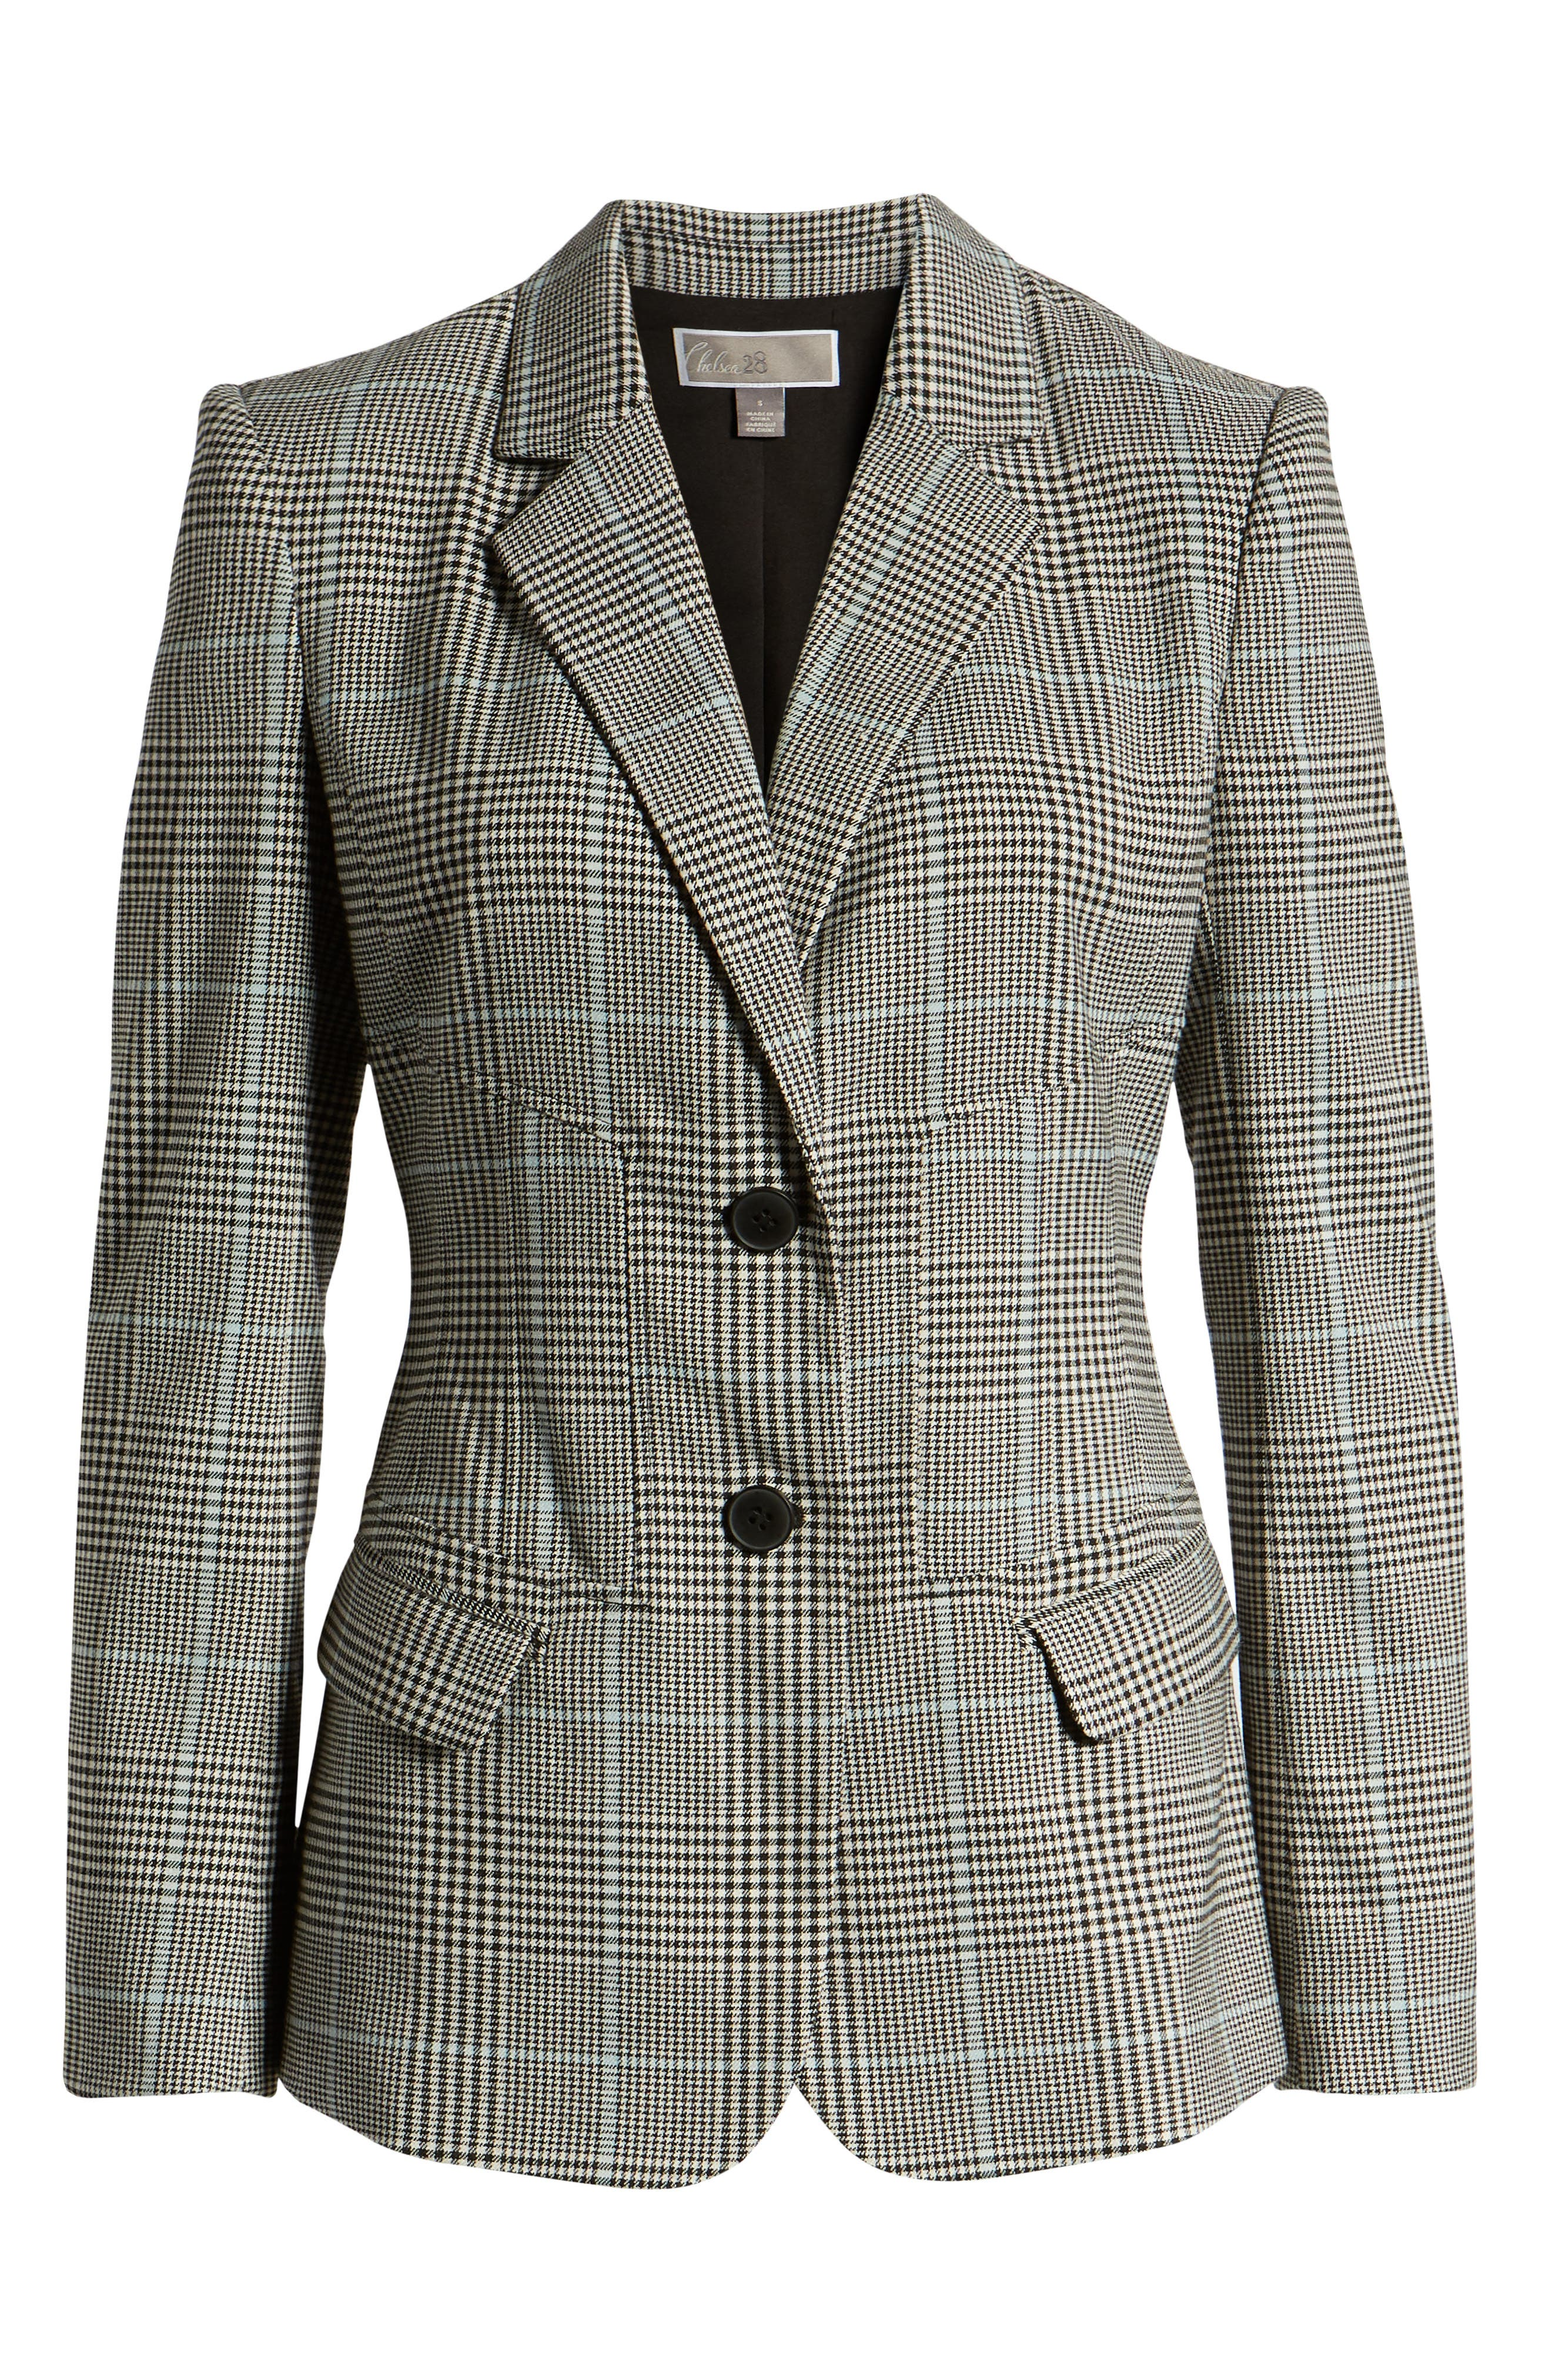 CHELSEA28, Plaid Blazer, Alternate thumbnail 6, color, BLUE OMPHALODES CHECK PATTERN